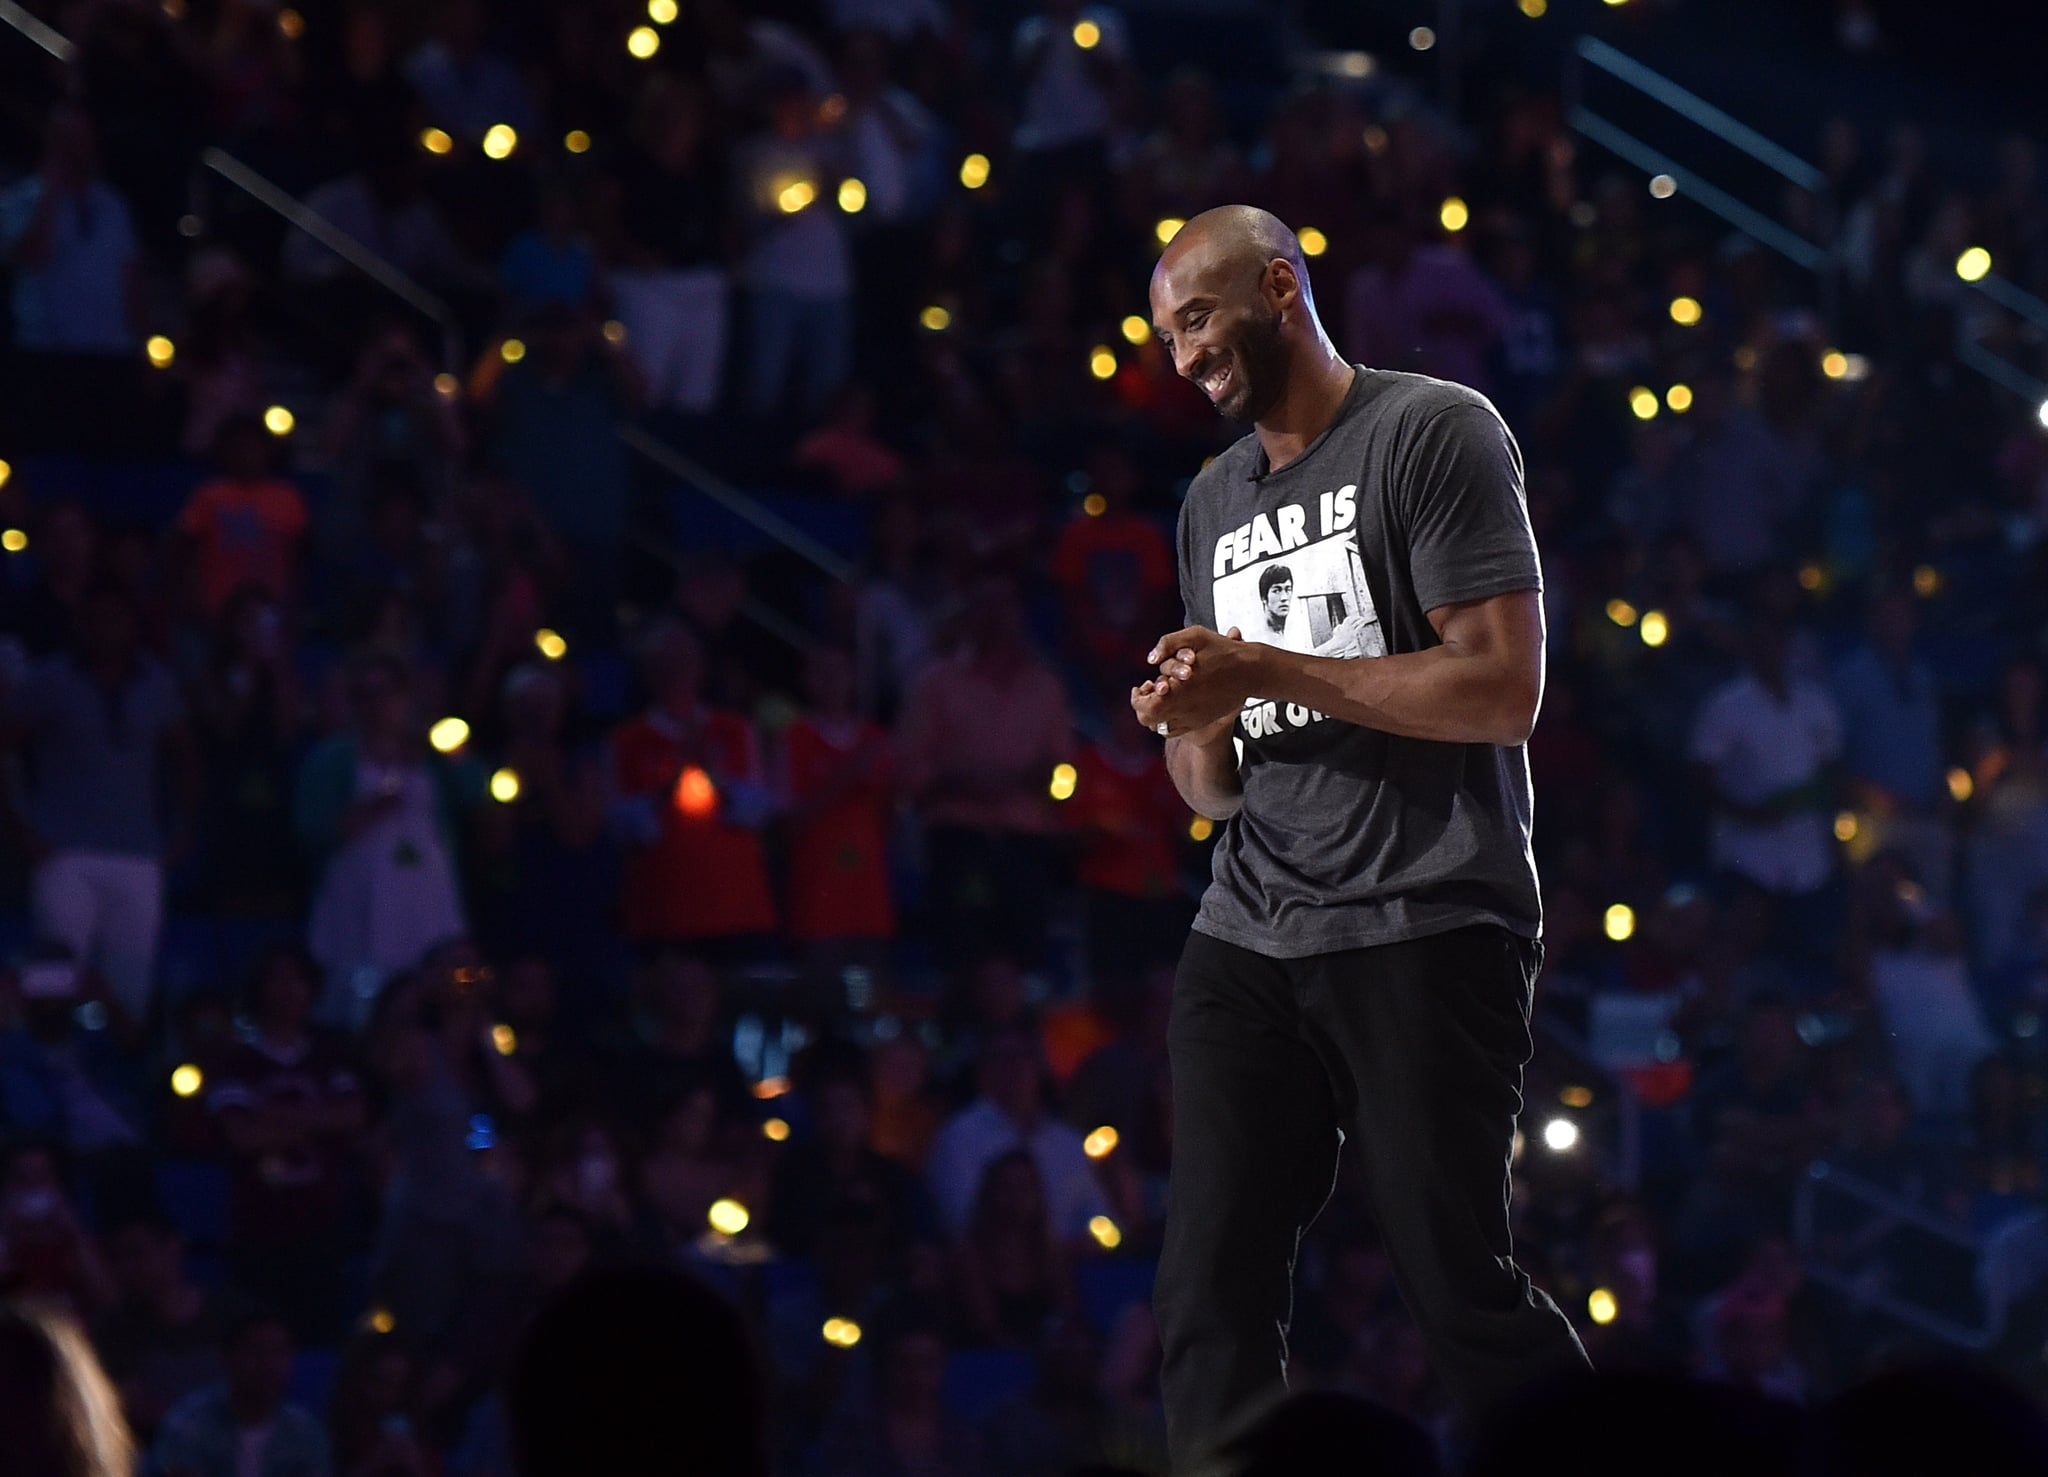 WESTWOOD, CA - JULY 14:  Honoree Kobe Bryant accepts the Legend award onstage during the Nickelodeon Kids' Choice Sports Awards 2016 at UCLA's Pauley Pavilion on July 14, 2016 in Westwood, California. The Nickelodeon Kids' Choice Sports Awards 2016 show airs on July 17, 2016 at 8pm on Nickelodeon.  (Photo by Mike Windle/KCSports2016/Getty Images for Nickelodeon)